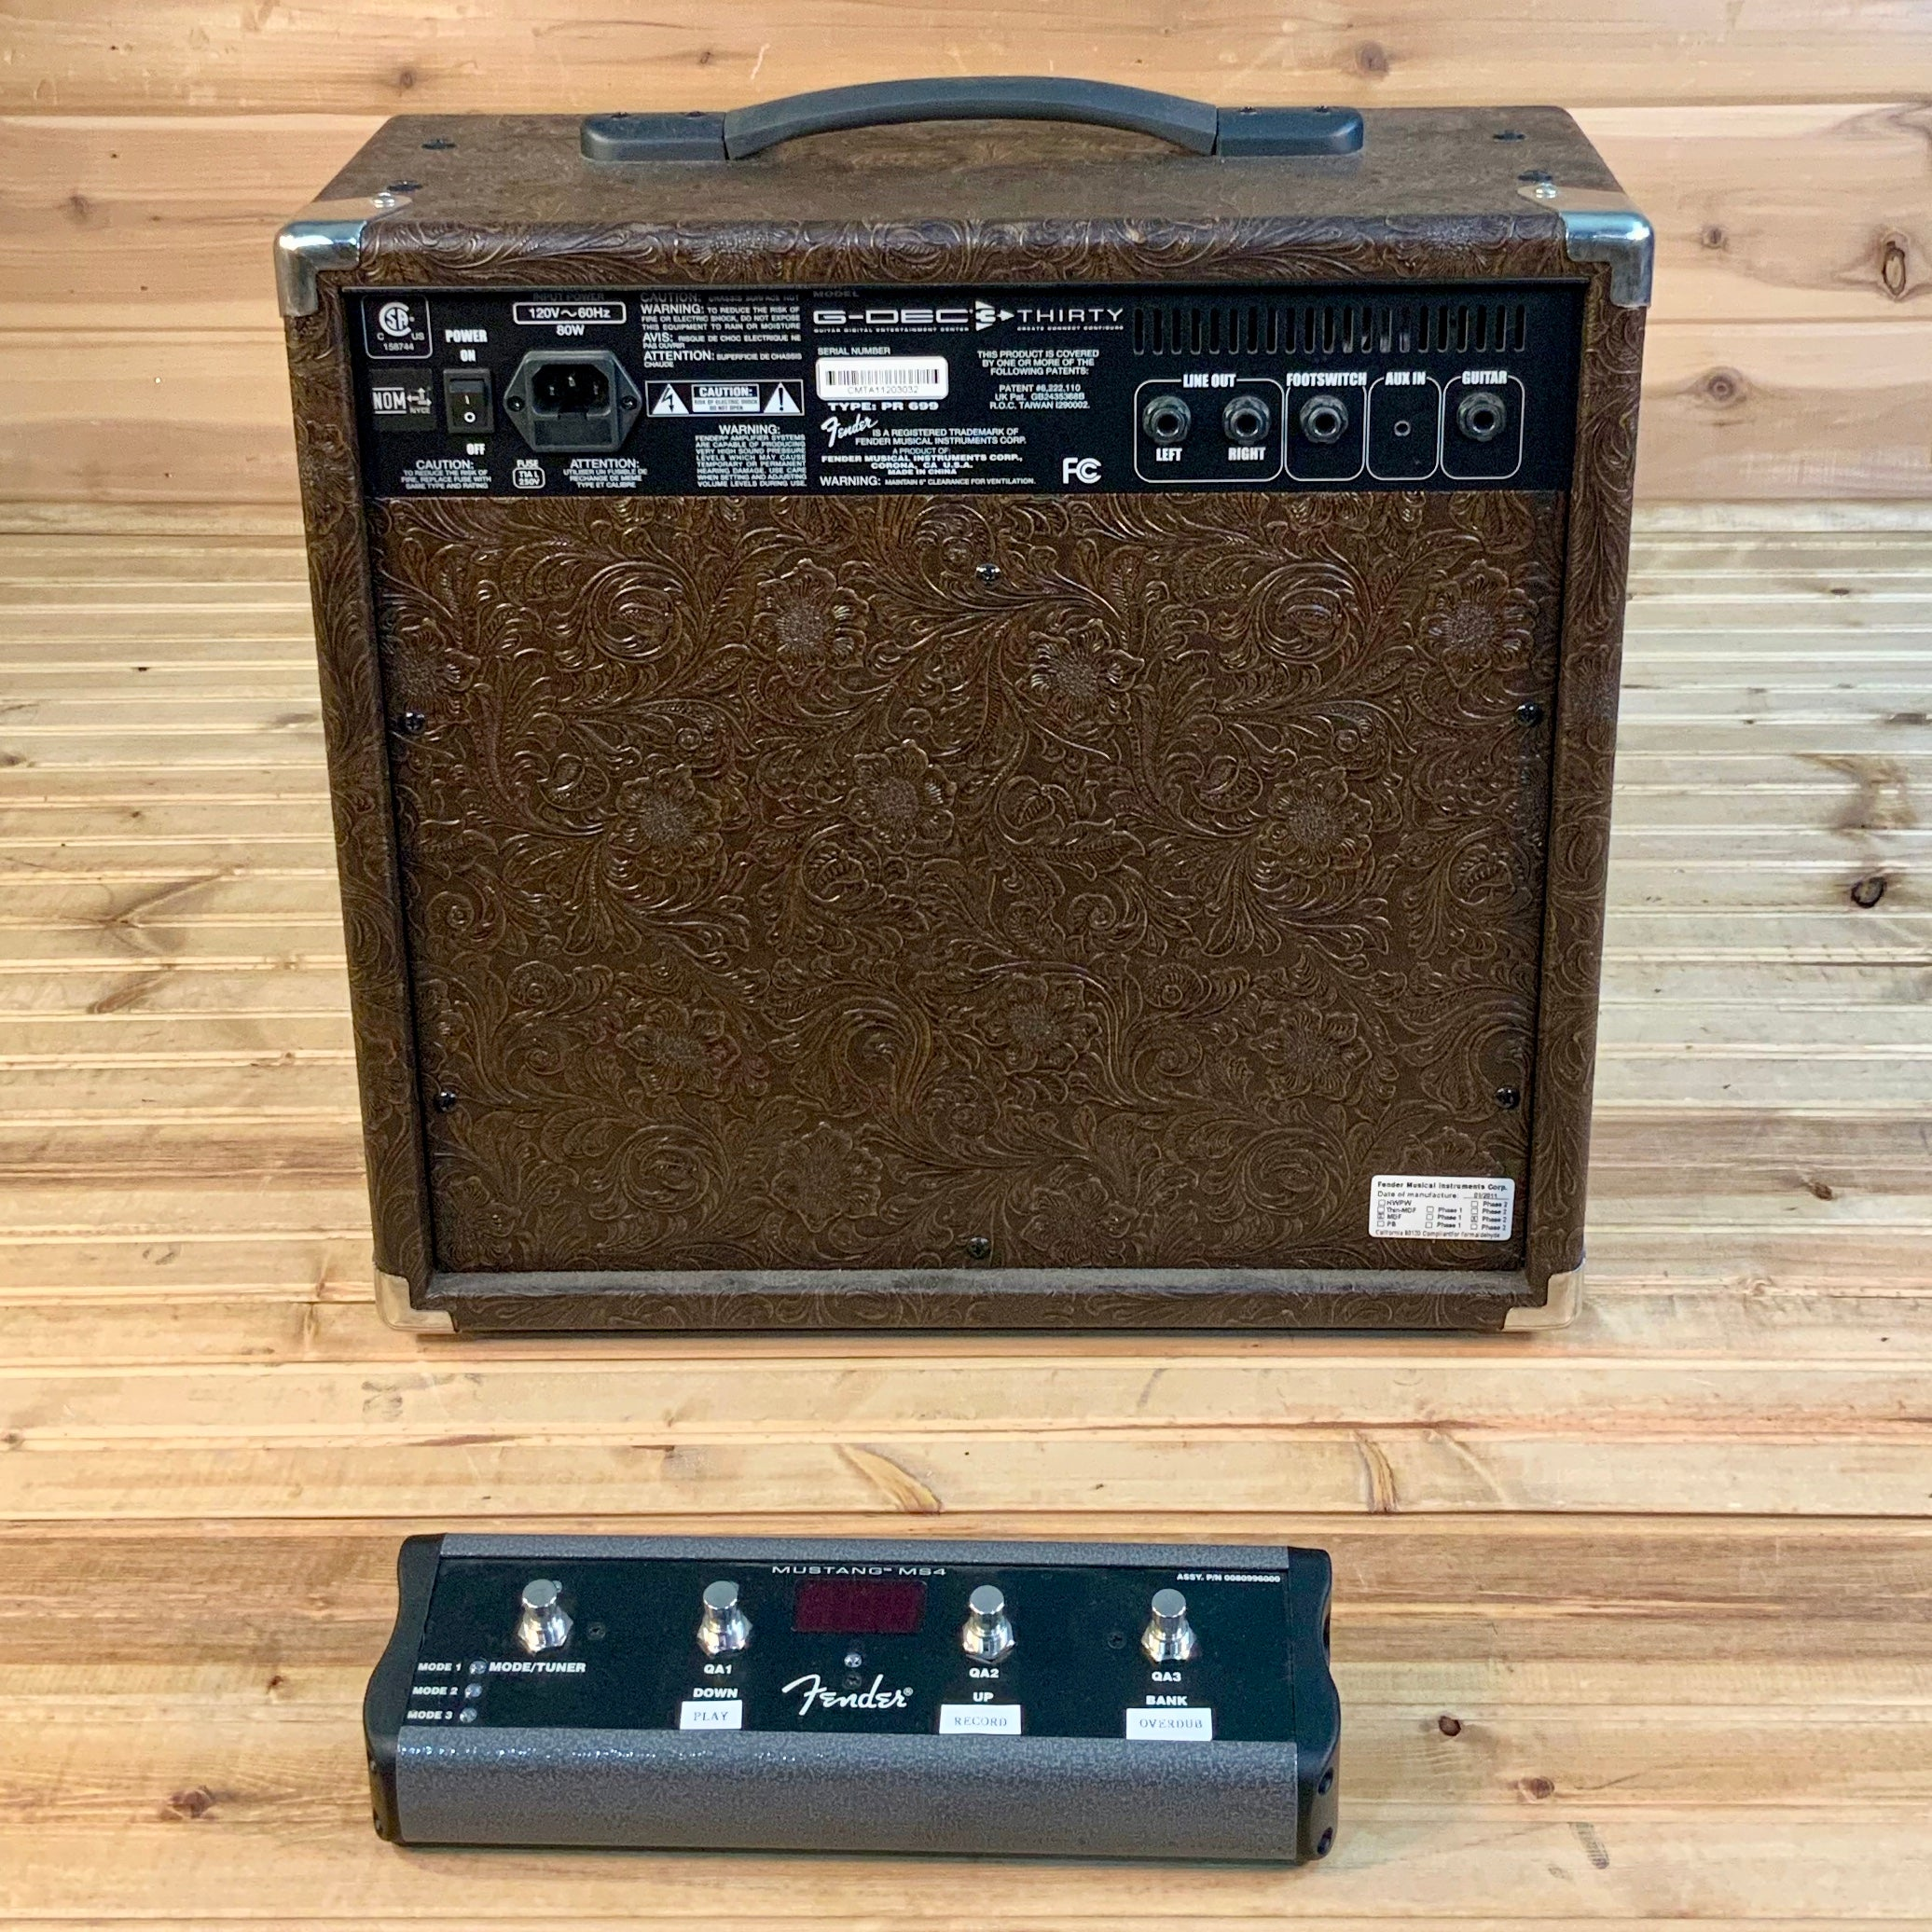 guitar amplifiers tagged used huber breese music. Black Bedroom Furniture Sets. Home Design Ideas